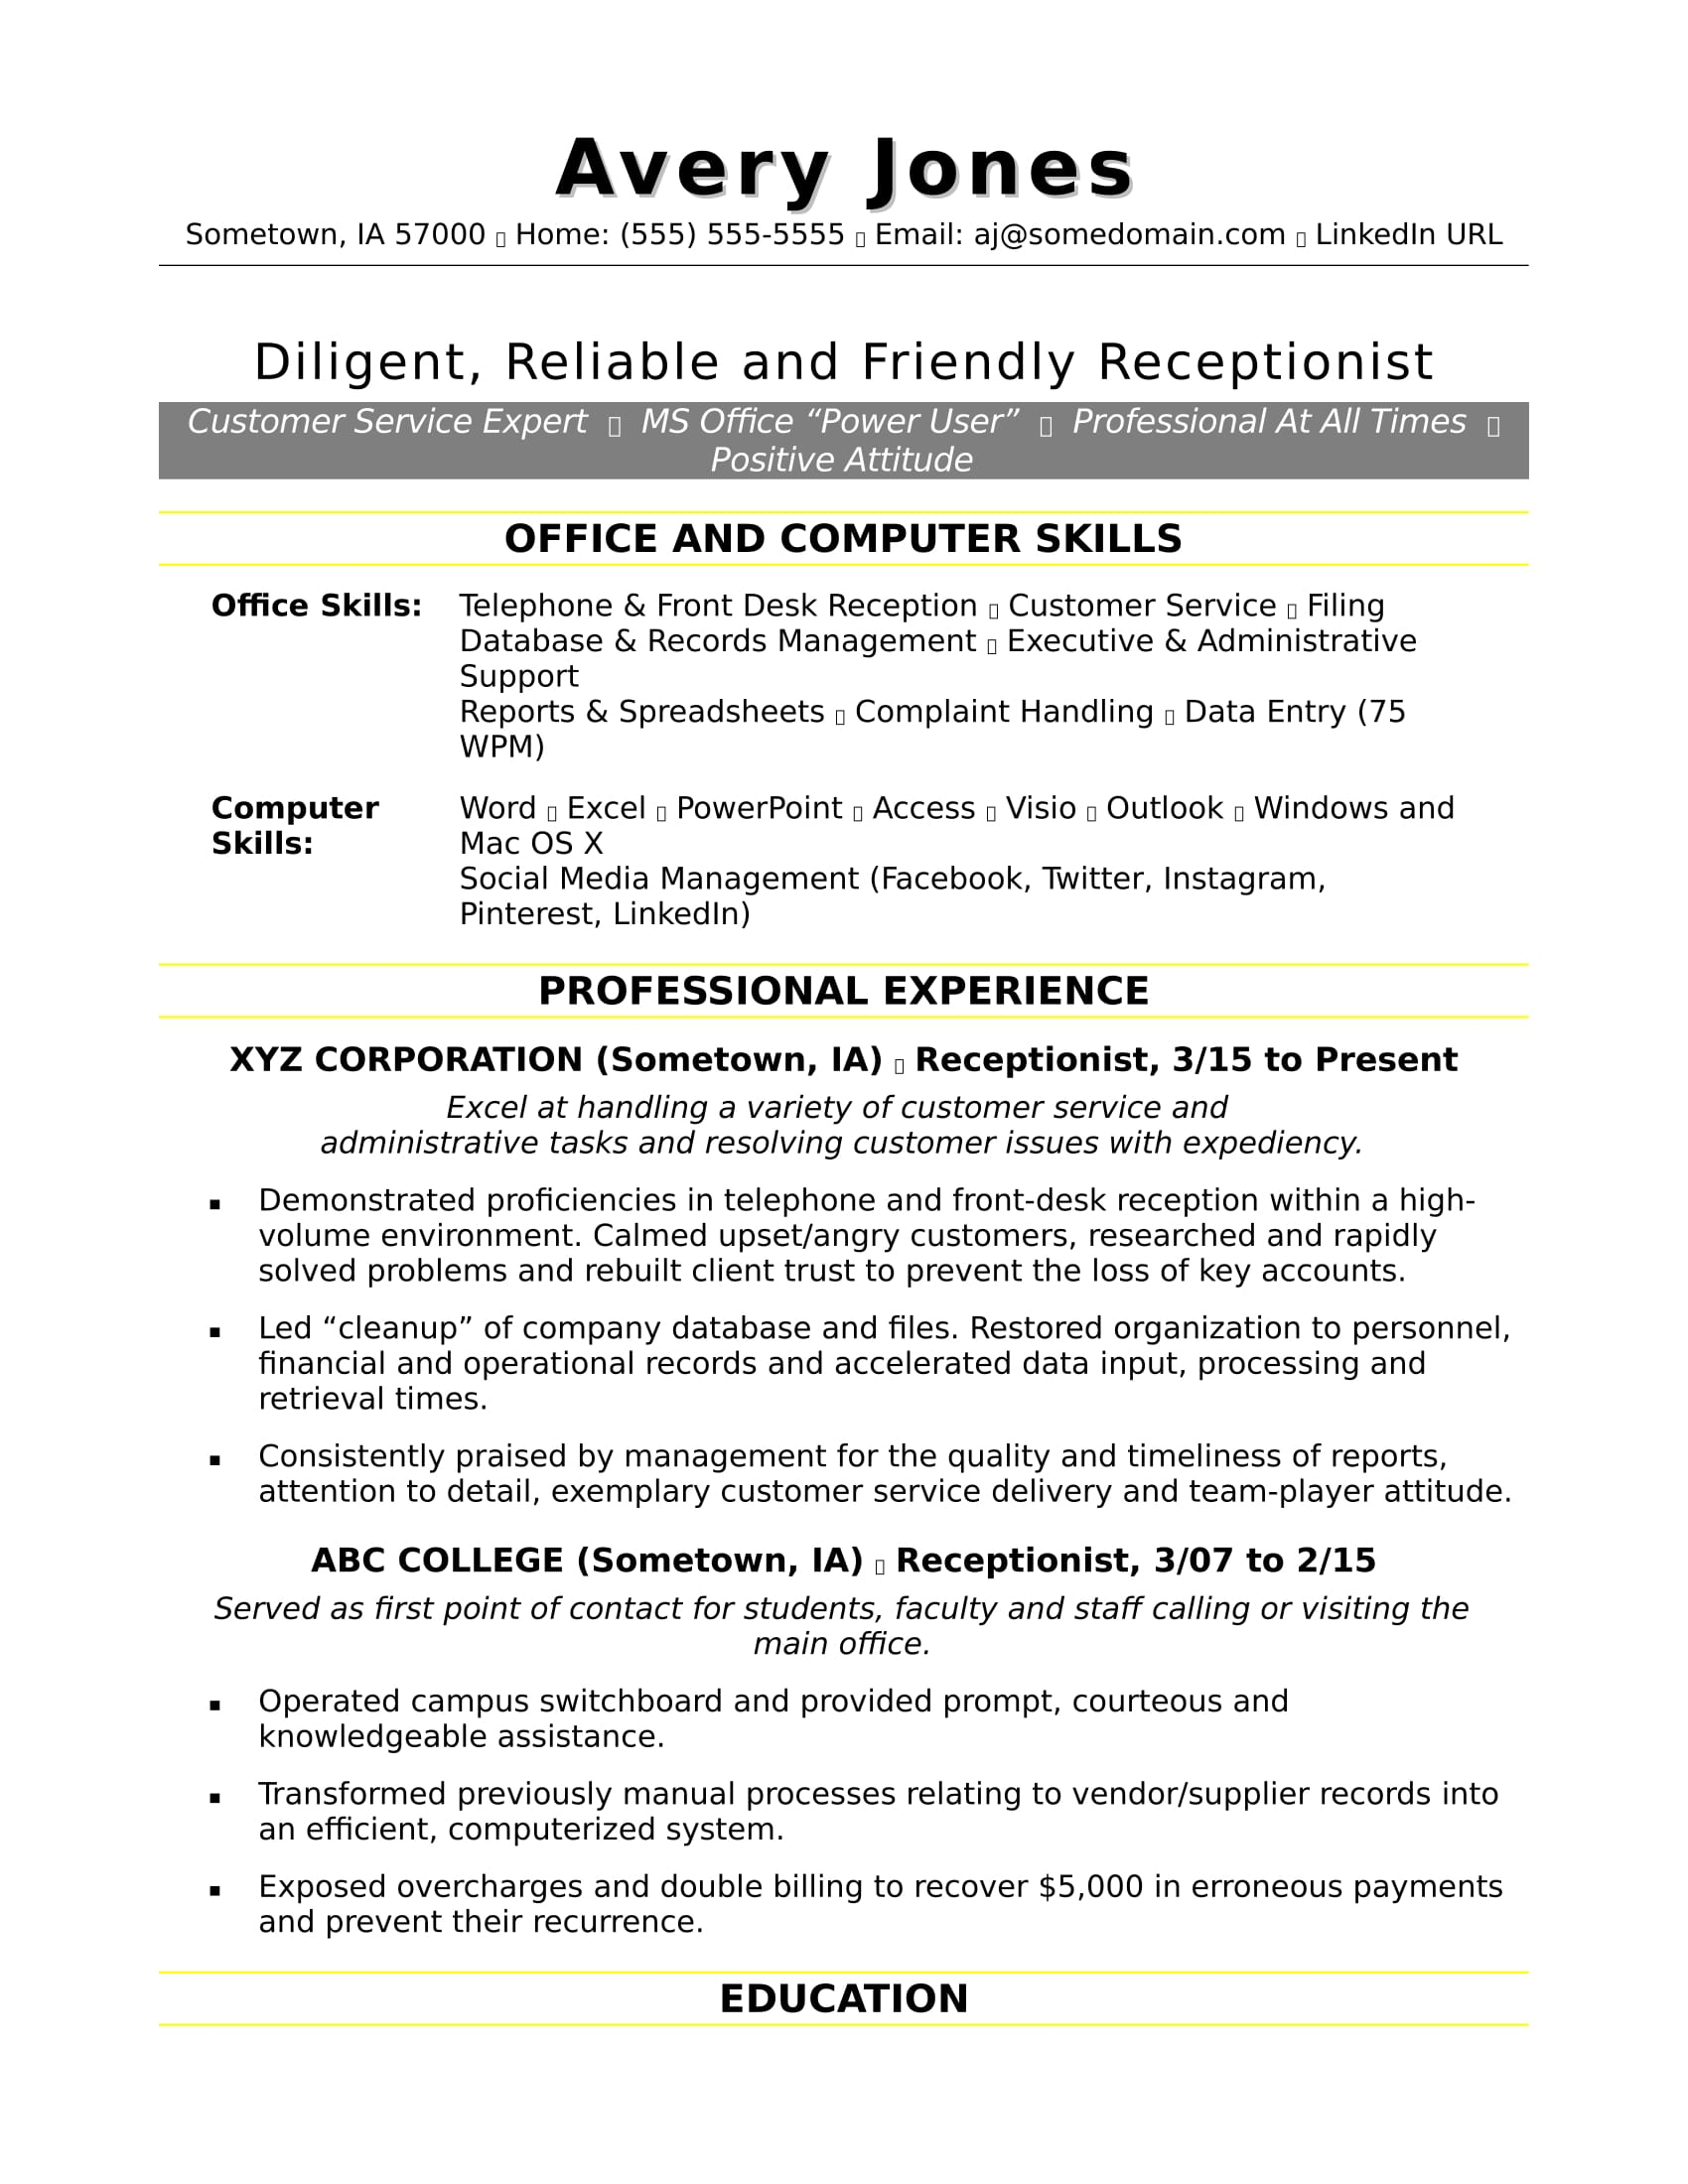 Sample Resume For A Receptionist  Best Sample Resumes